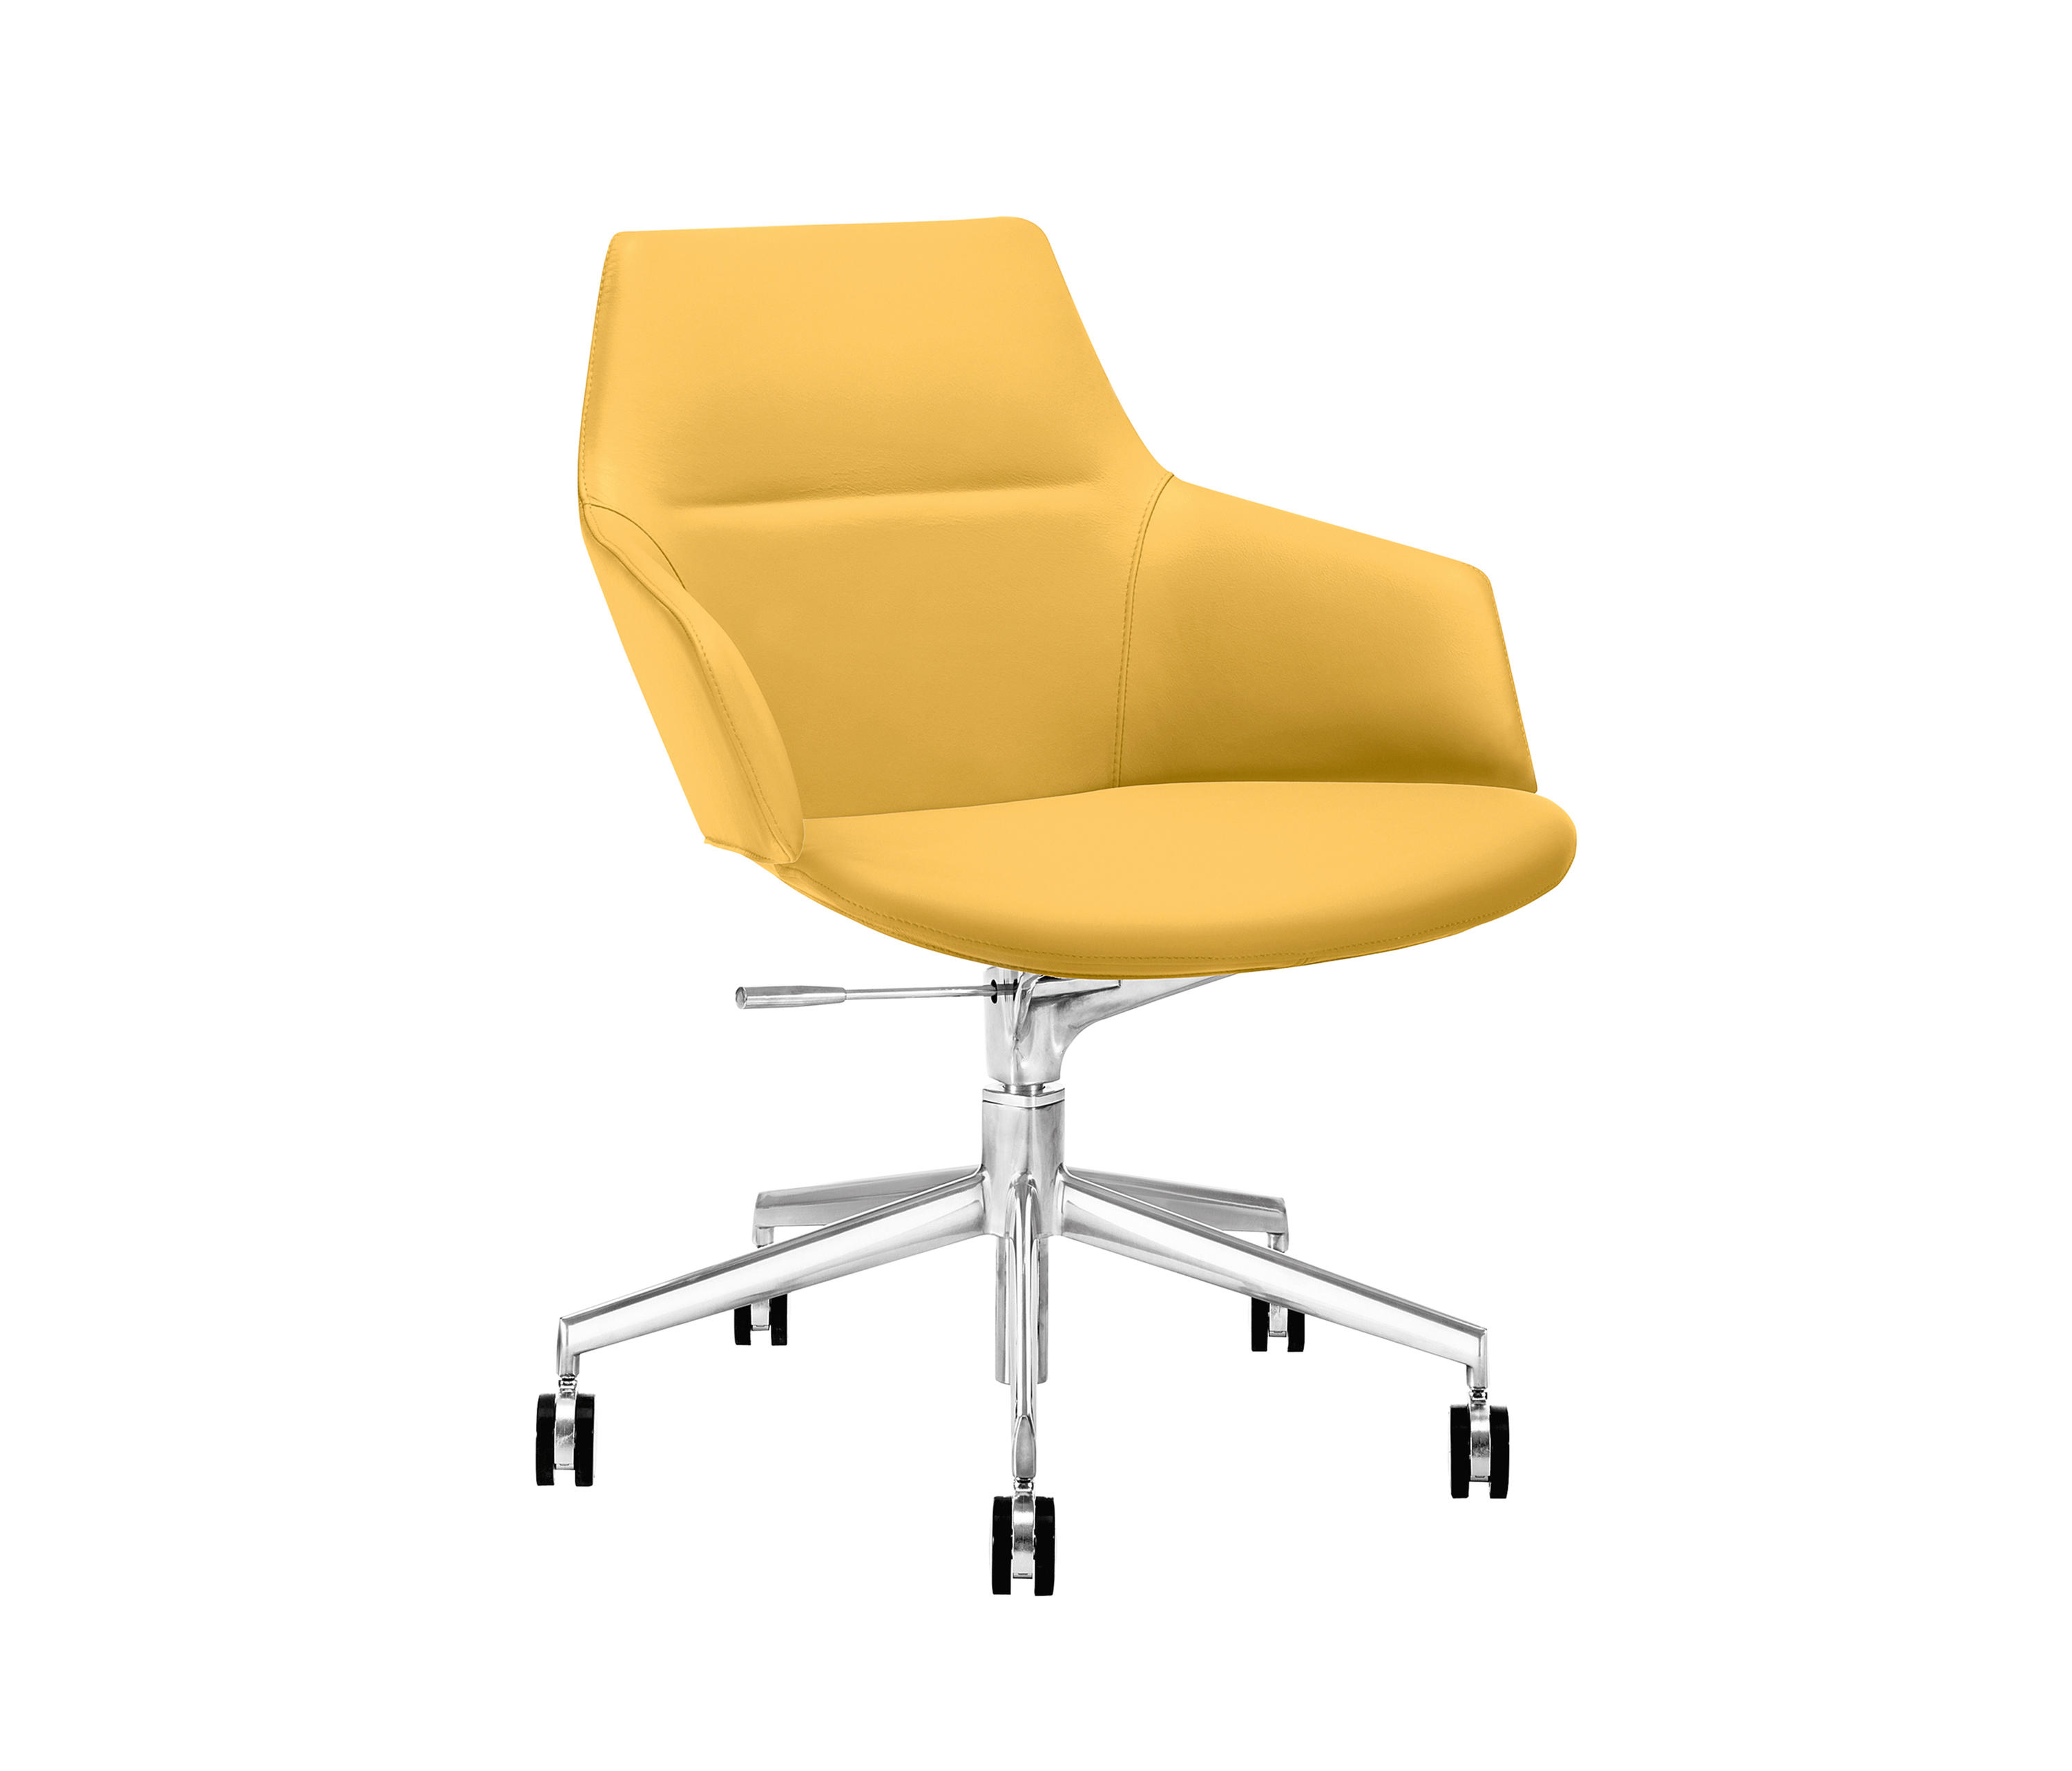 ASTON CONFERENCE Task chairs from Arper